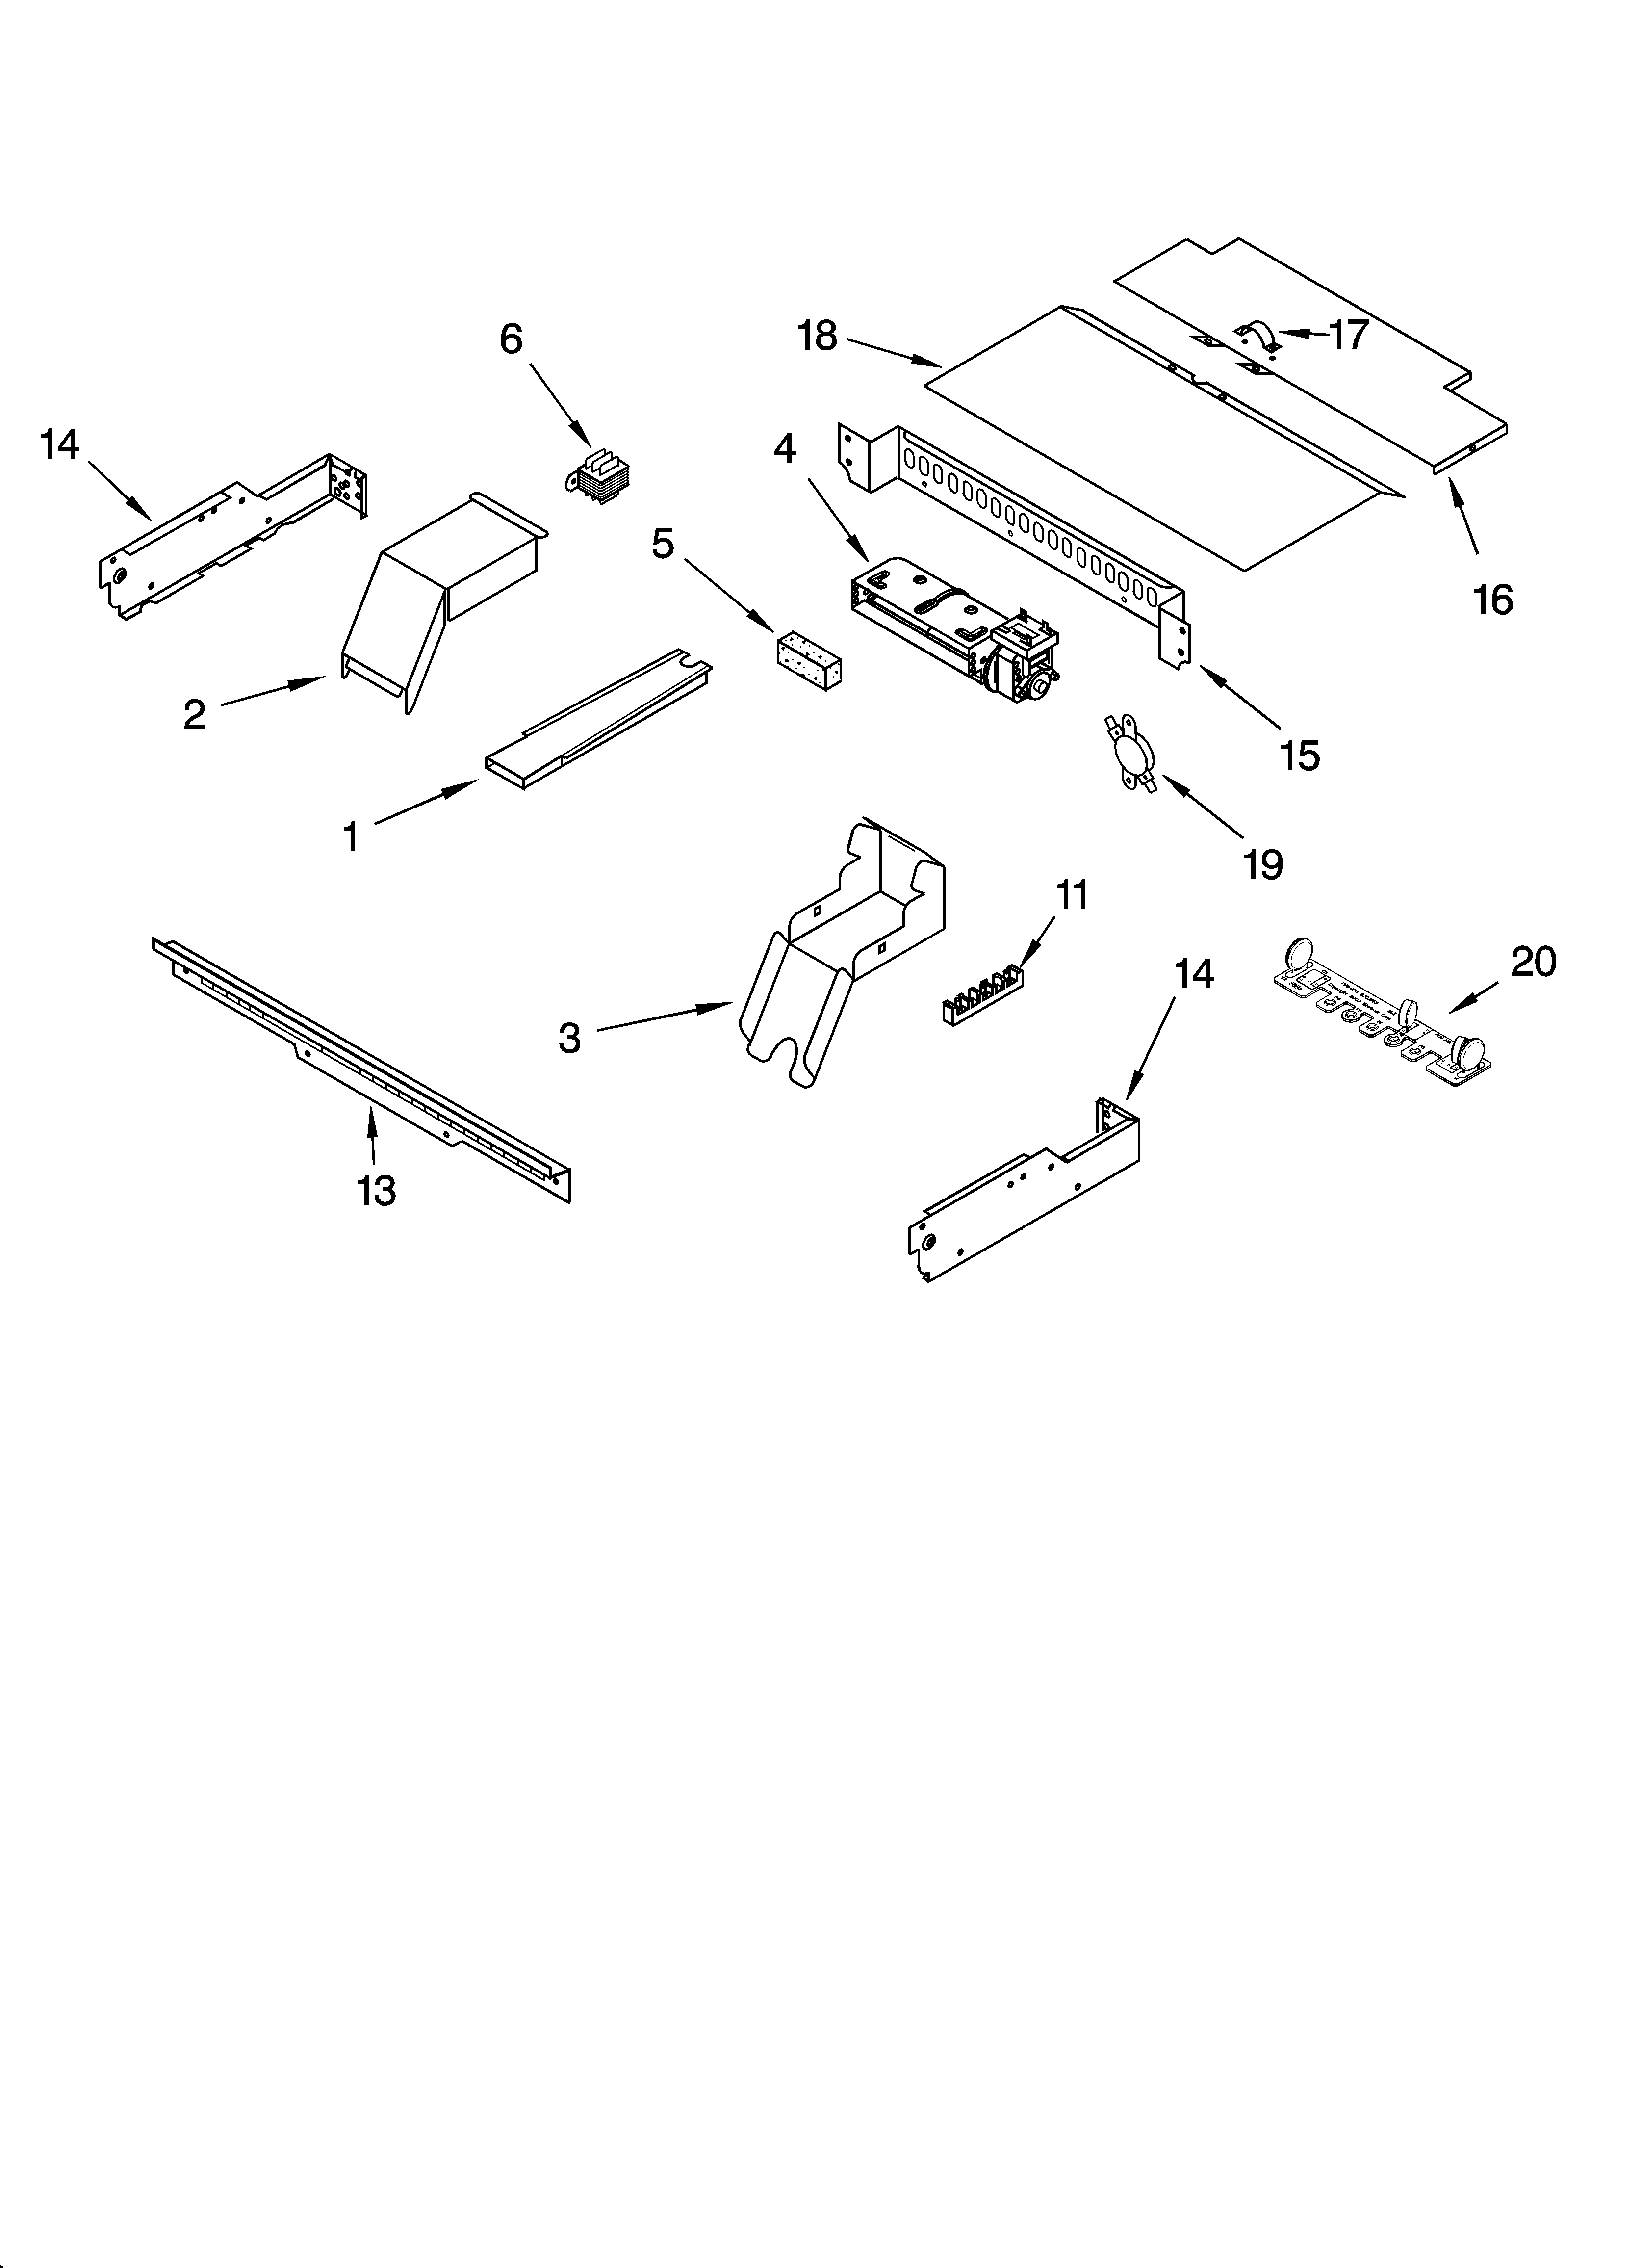 Whirlpool GBD307PDT10 top venting parts, optional parts diagram